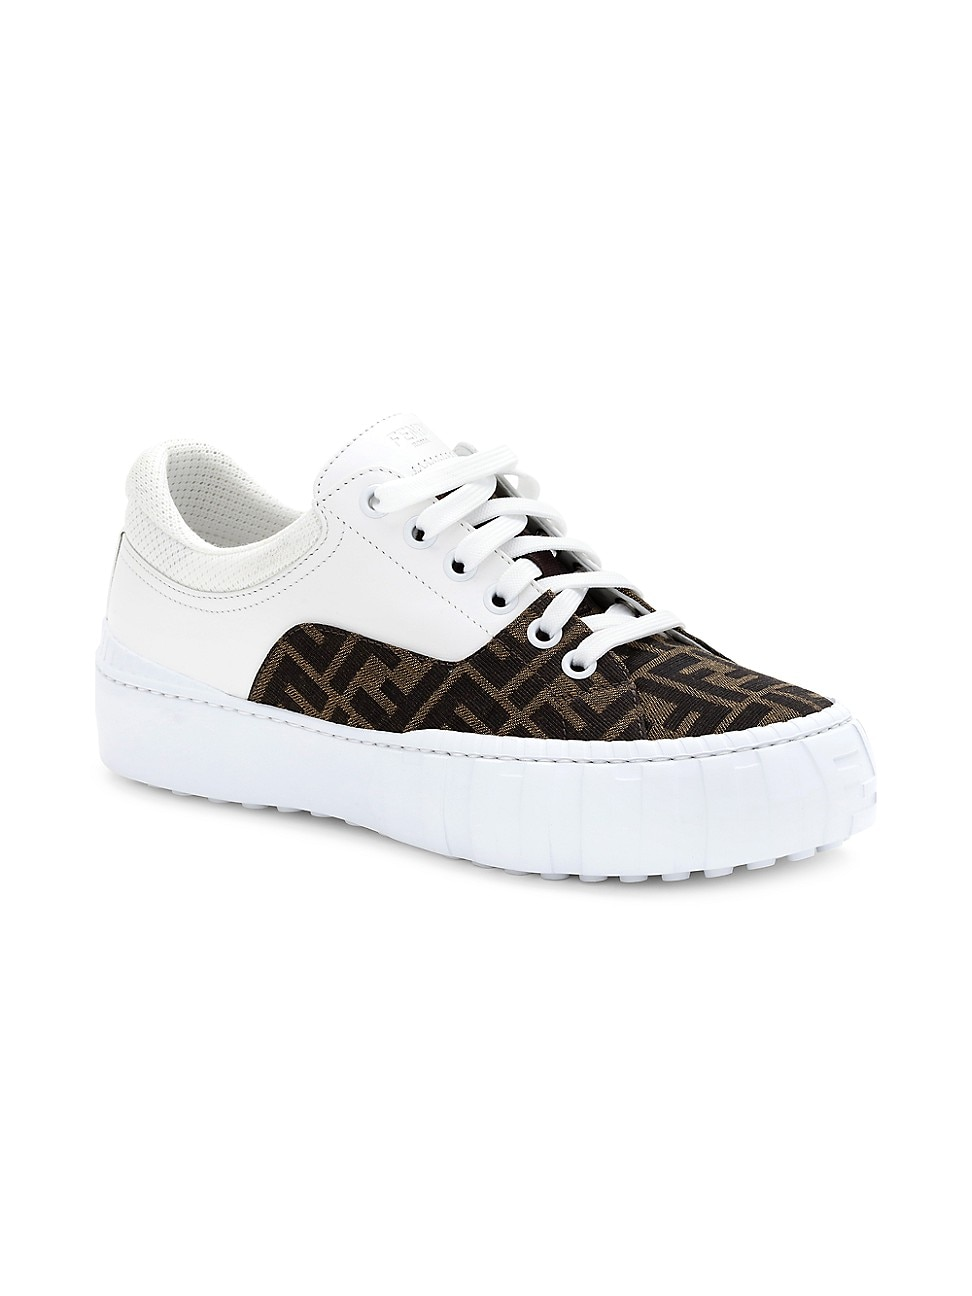 Fendi WOMEN'S FORCE SNEAKERS